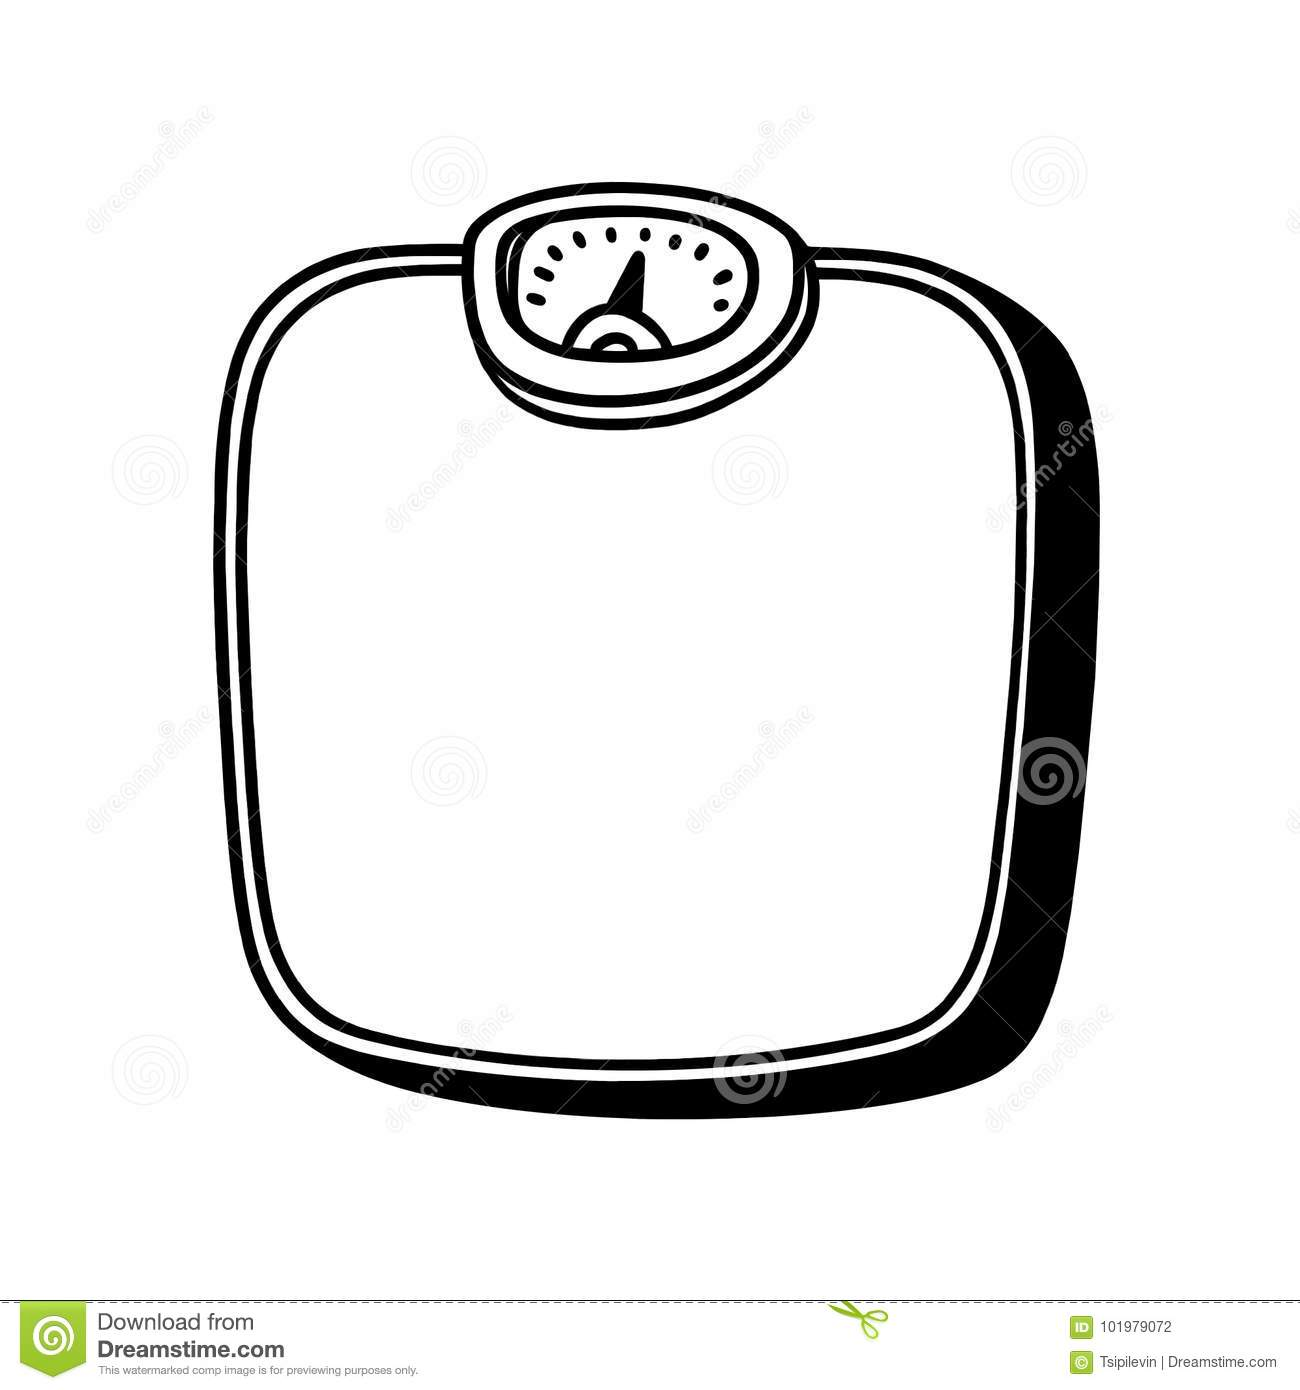 Bathroom Scale Black And White Illustration Stock